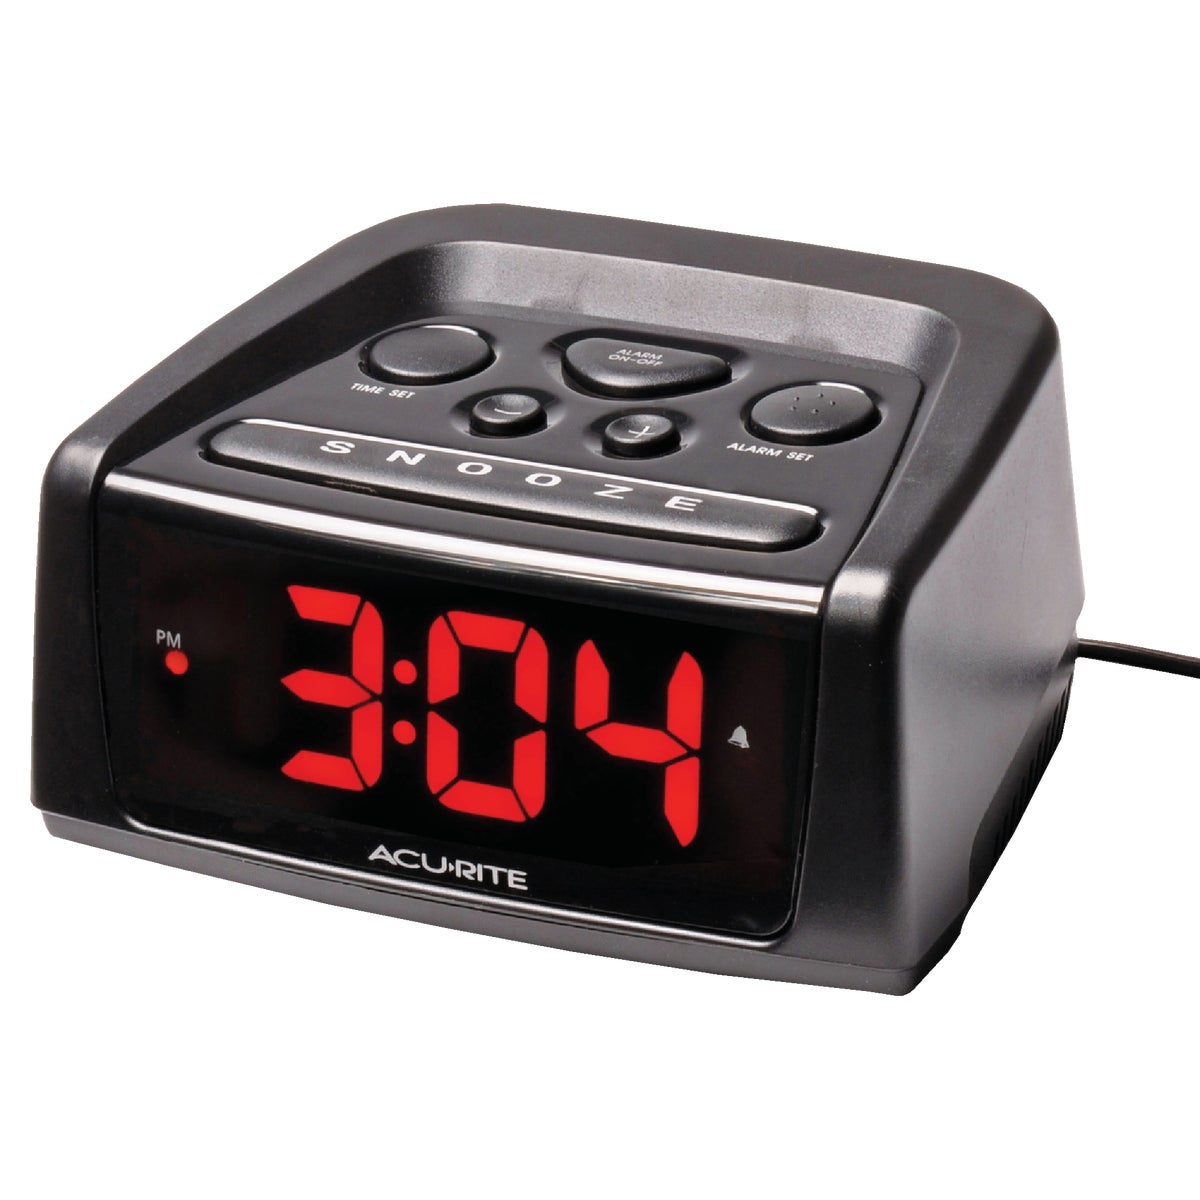 BIG & LOUD ALARM CLOCK - 13019A2 by Chaney Instrument Co